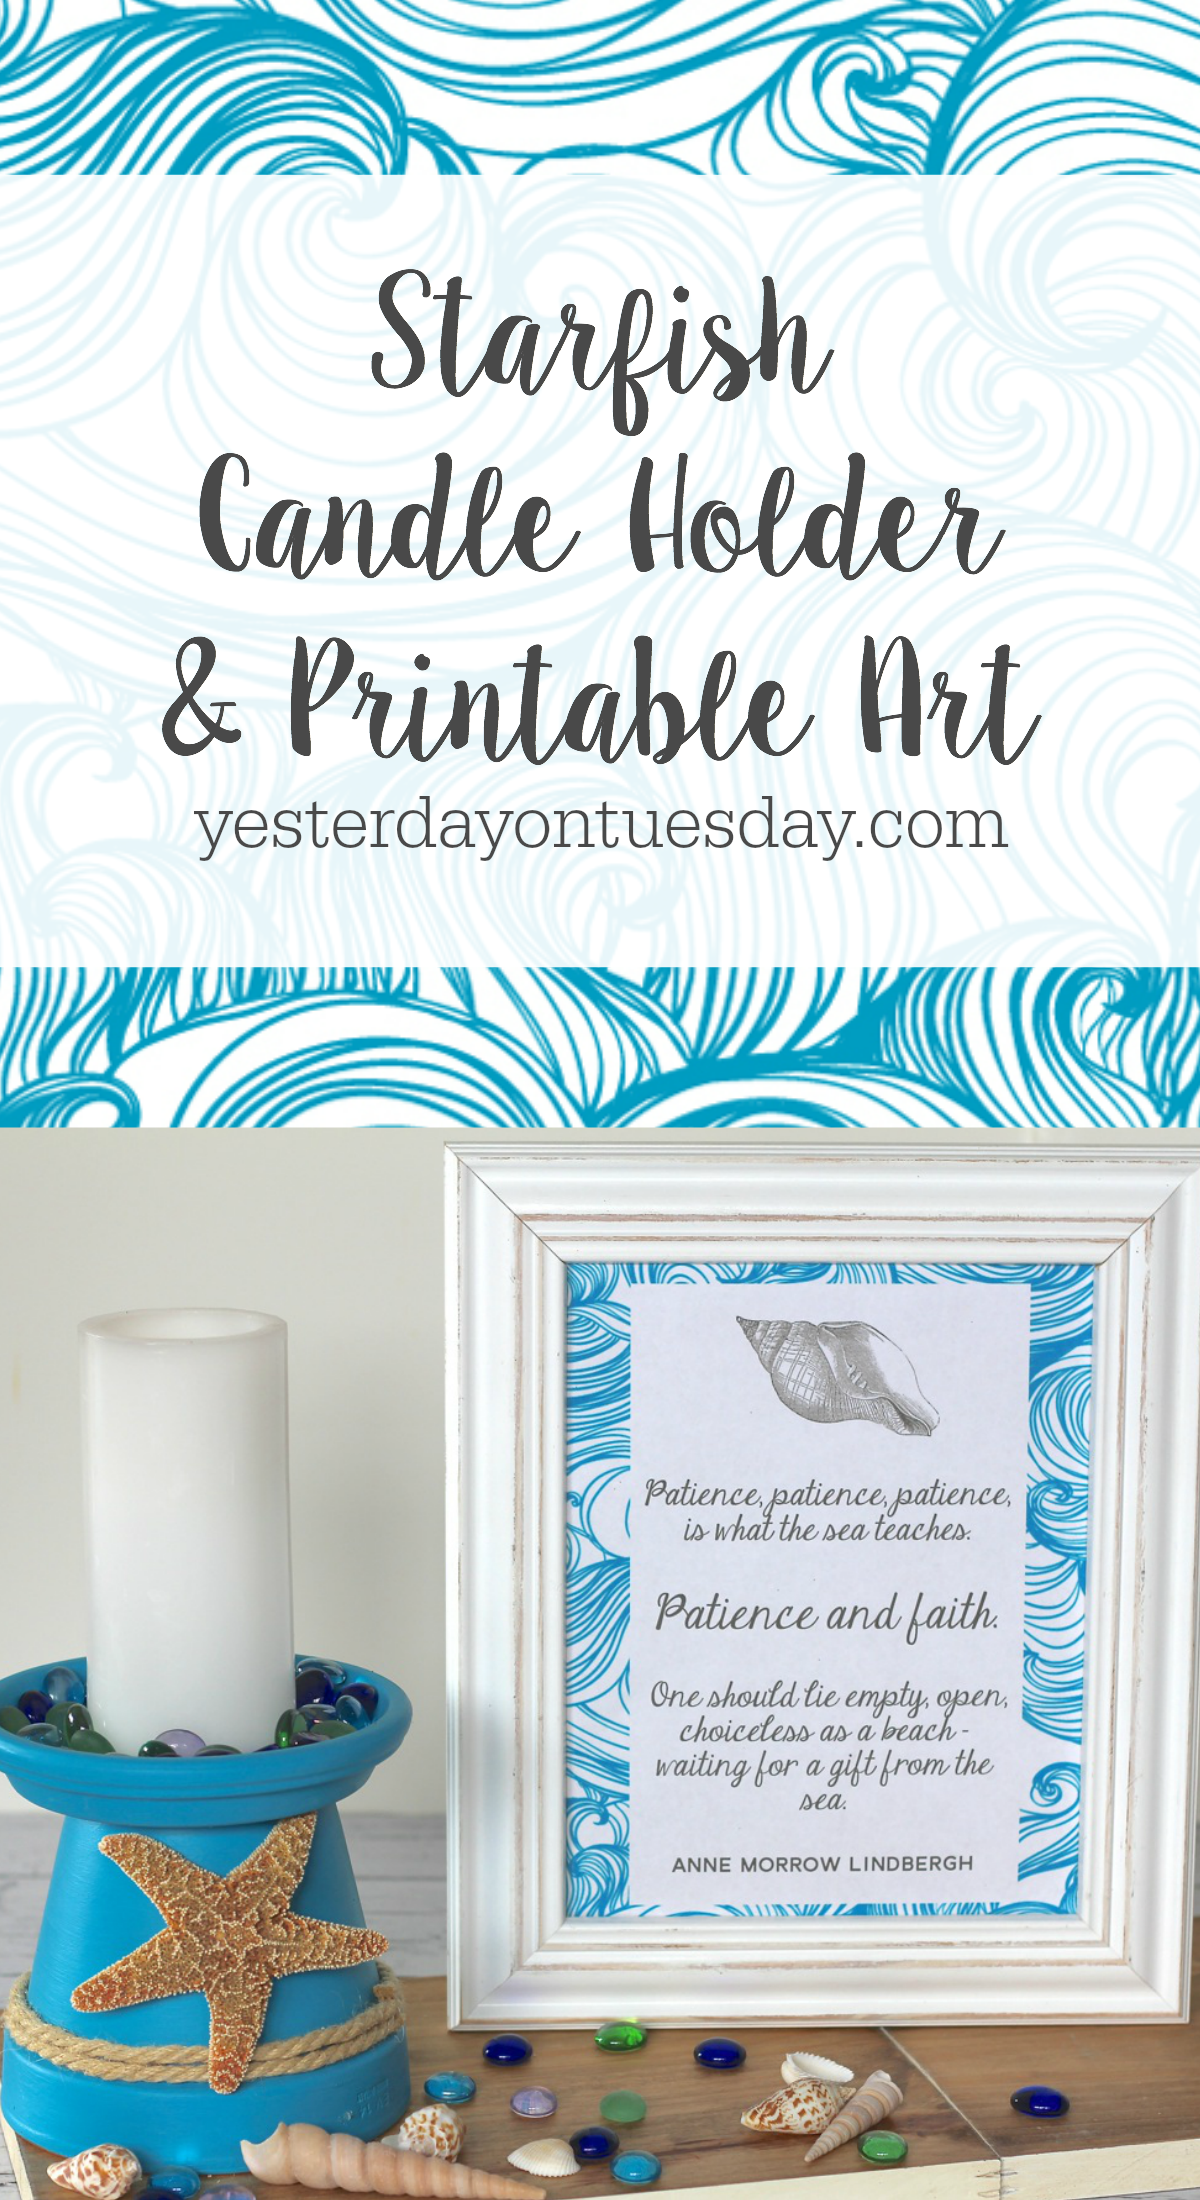 How to diy a starfish candle holder out of a flower pot a easy how to diy a starfish candle holder out of a flower pot a easy beachy craft and decor project plus lovely printable inspirational art solutioingenieria Gallery